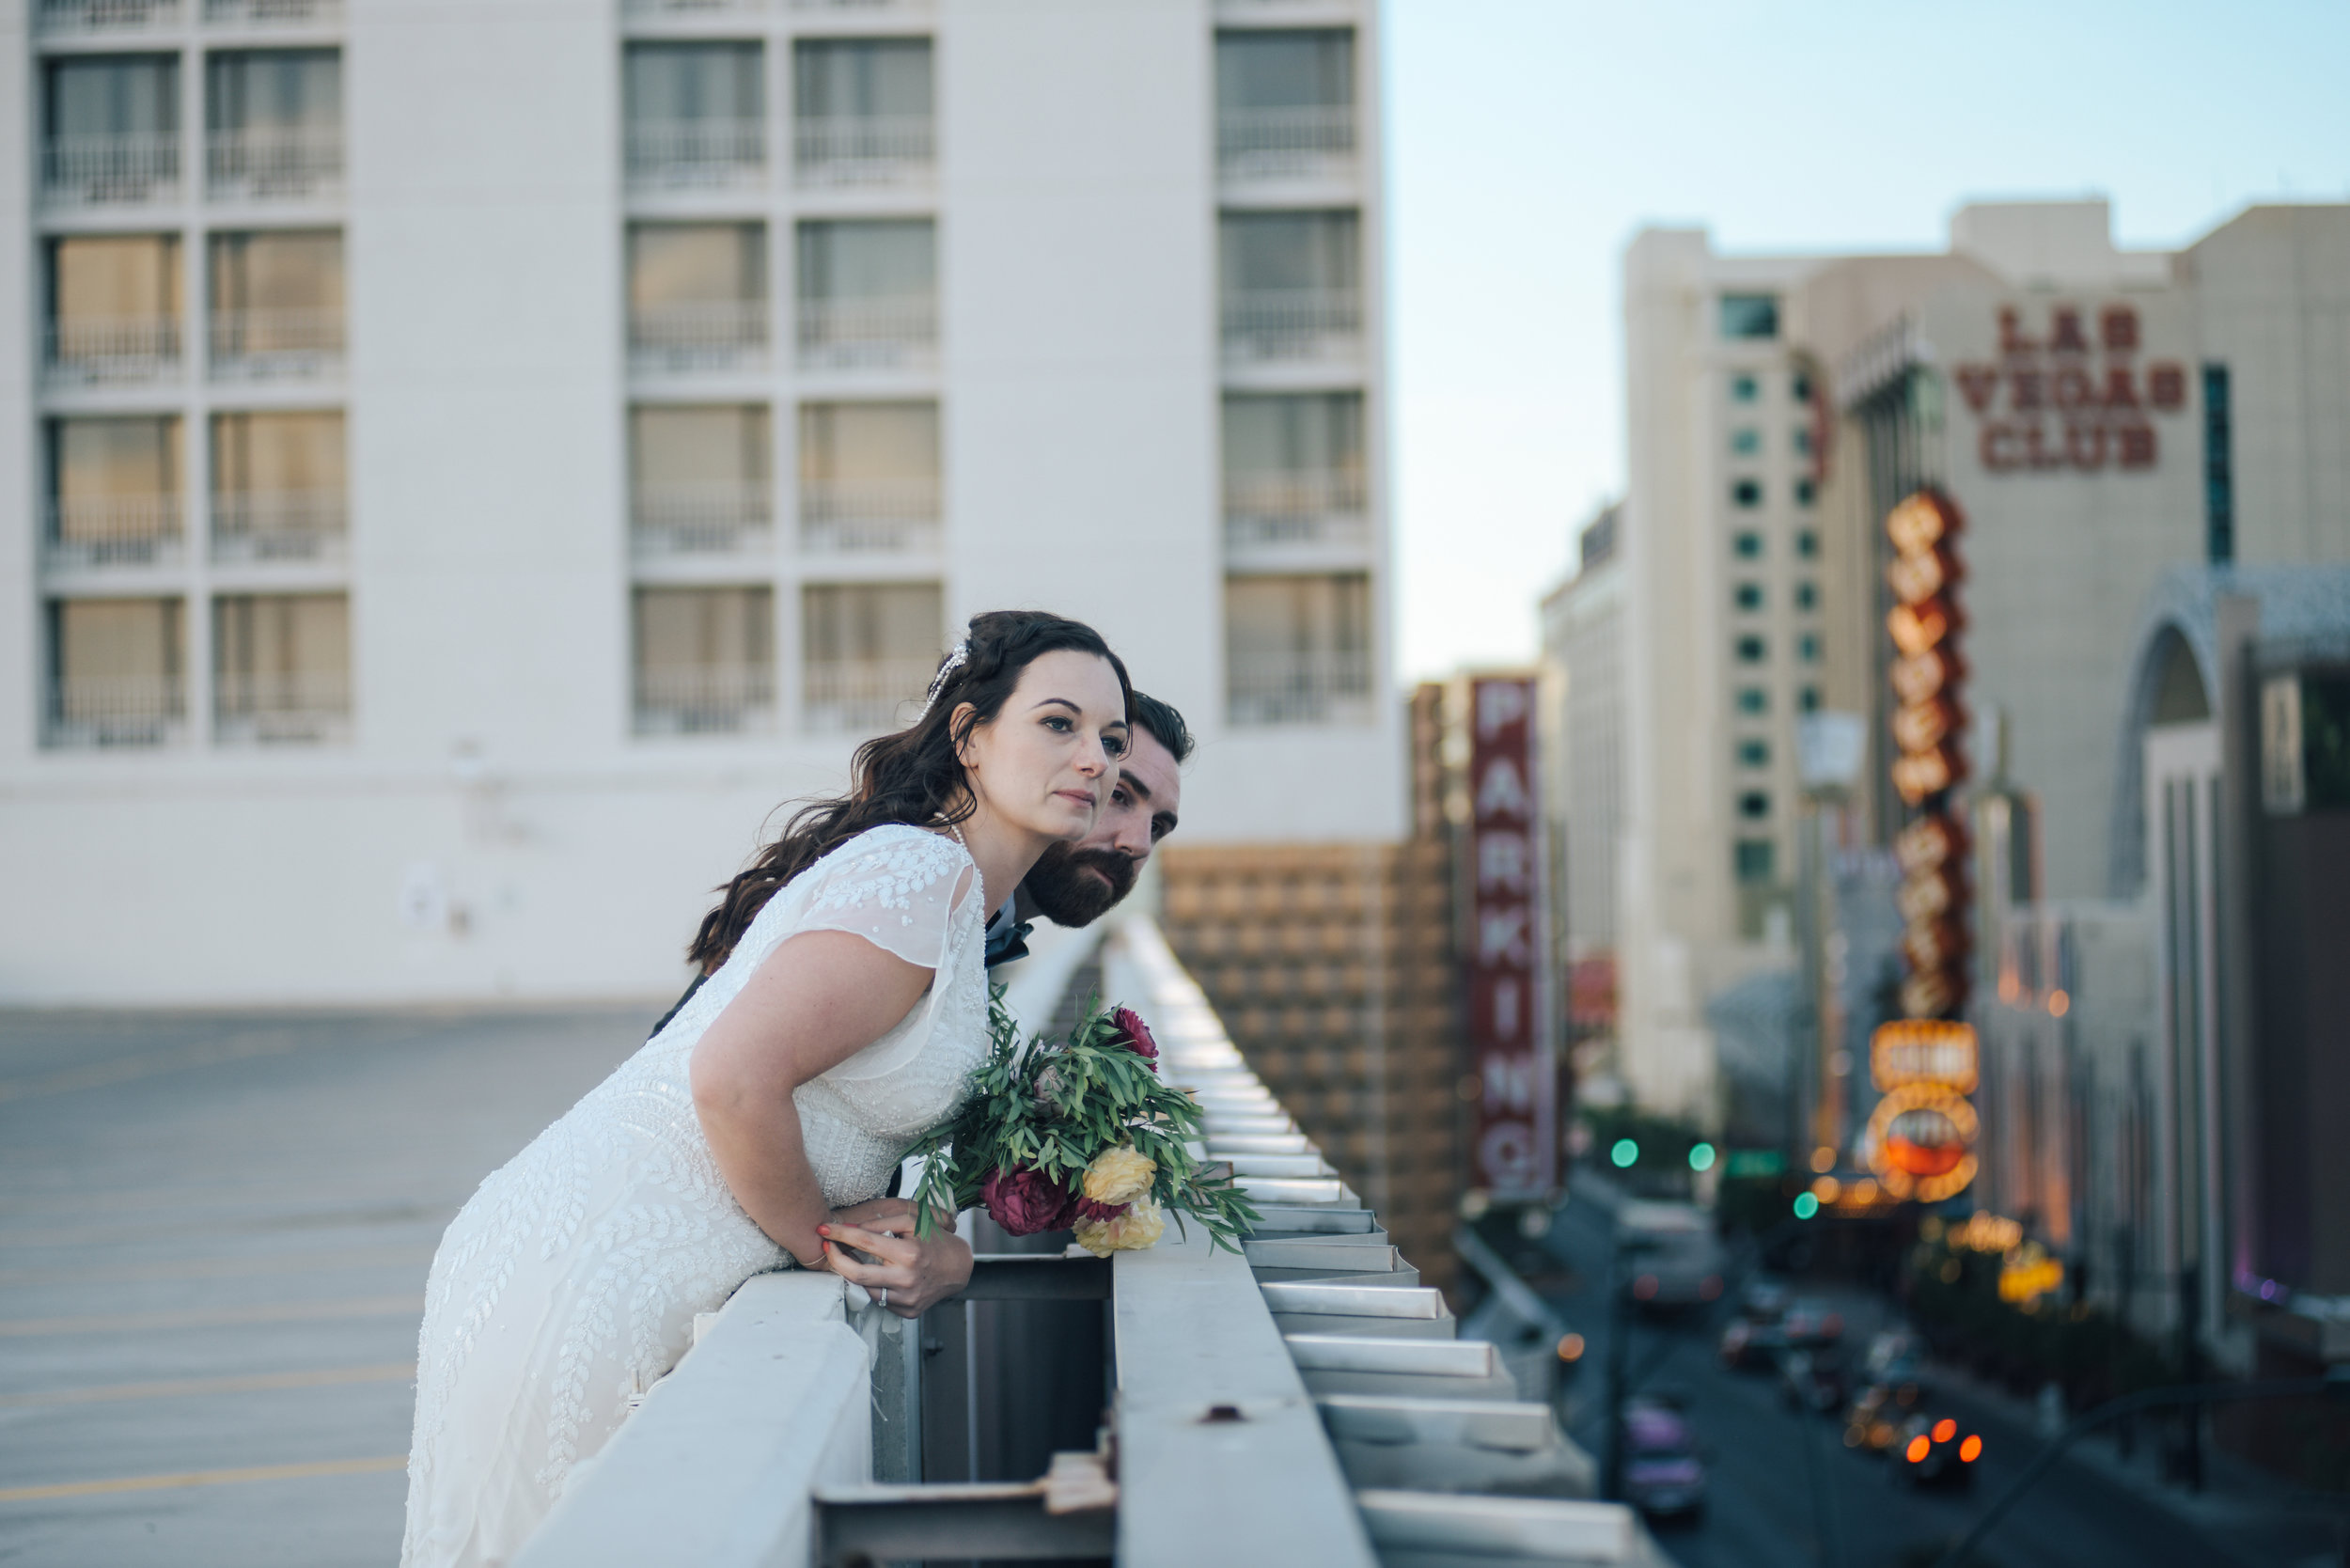 downtown las vegas, downtown wedding, downtown elopement, bride and groom, groom, flora pop ceremony, flora pop, bride, las vegas wedding, las vegas elopement, elopement, elope, dry lake bed wedding, lifestyle photography, las vegas, flowers, bridal flowers, wedding dress, wedding, elope